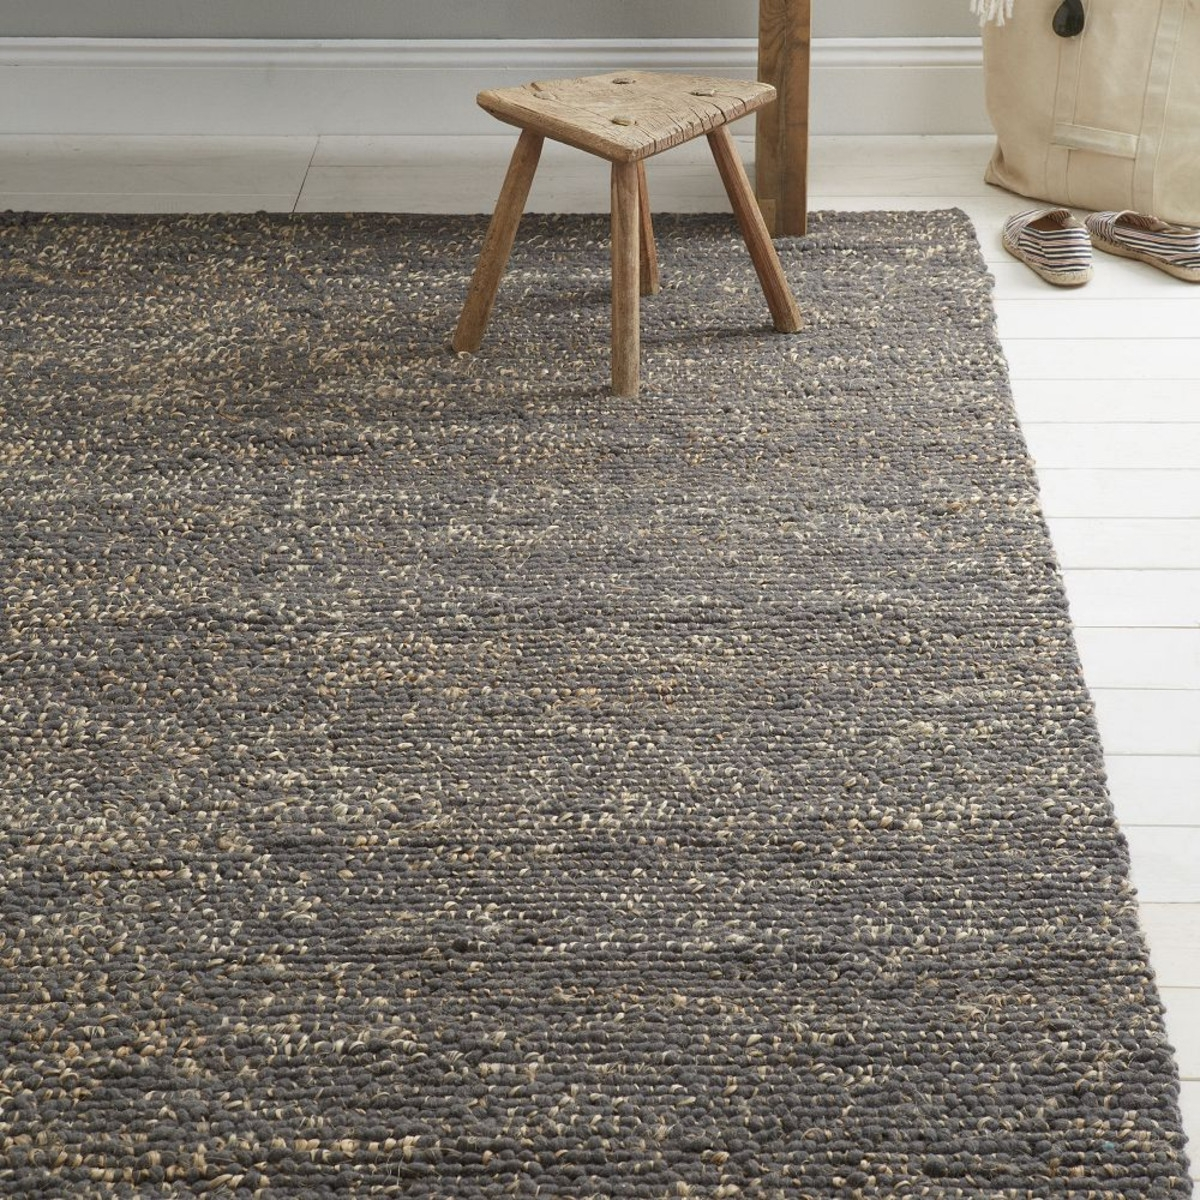 15 Photo Of Natural Wool Area Rugs